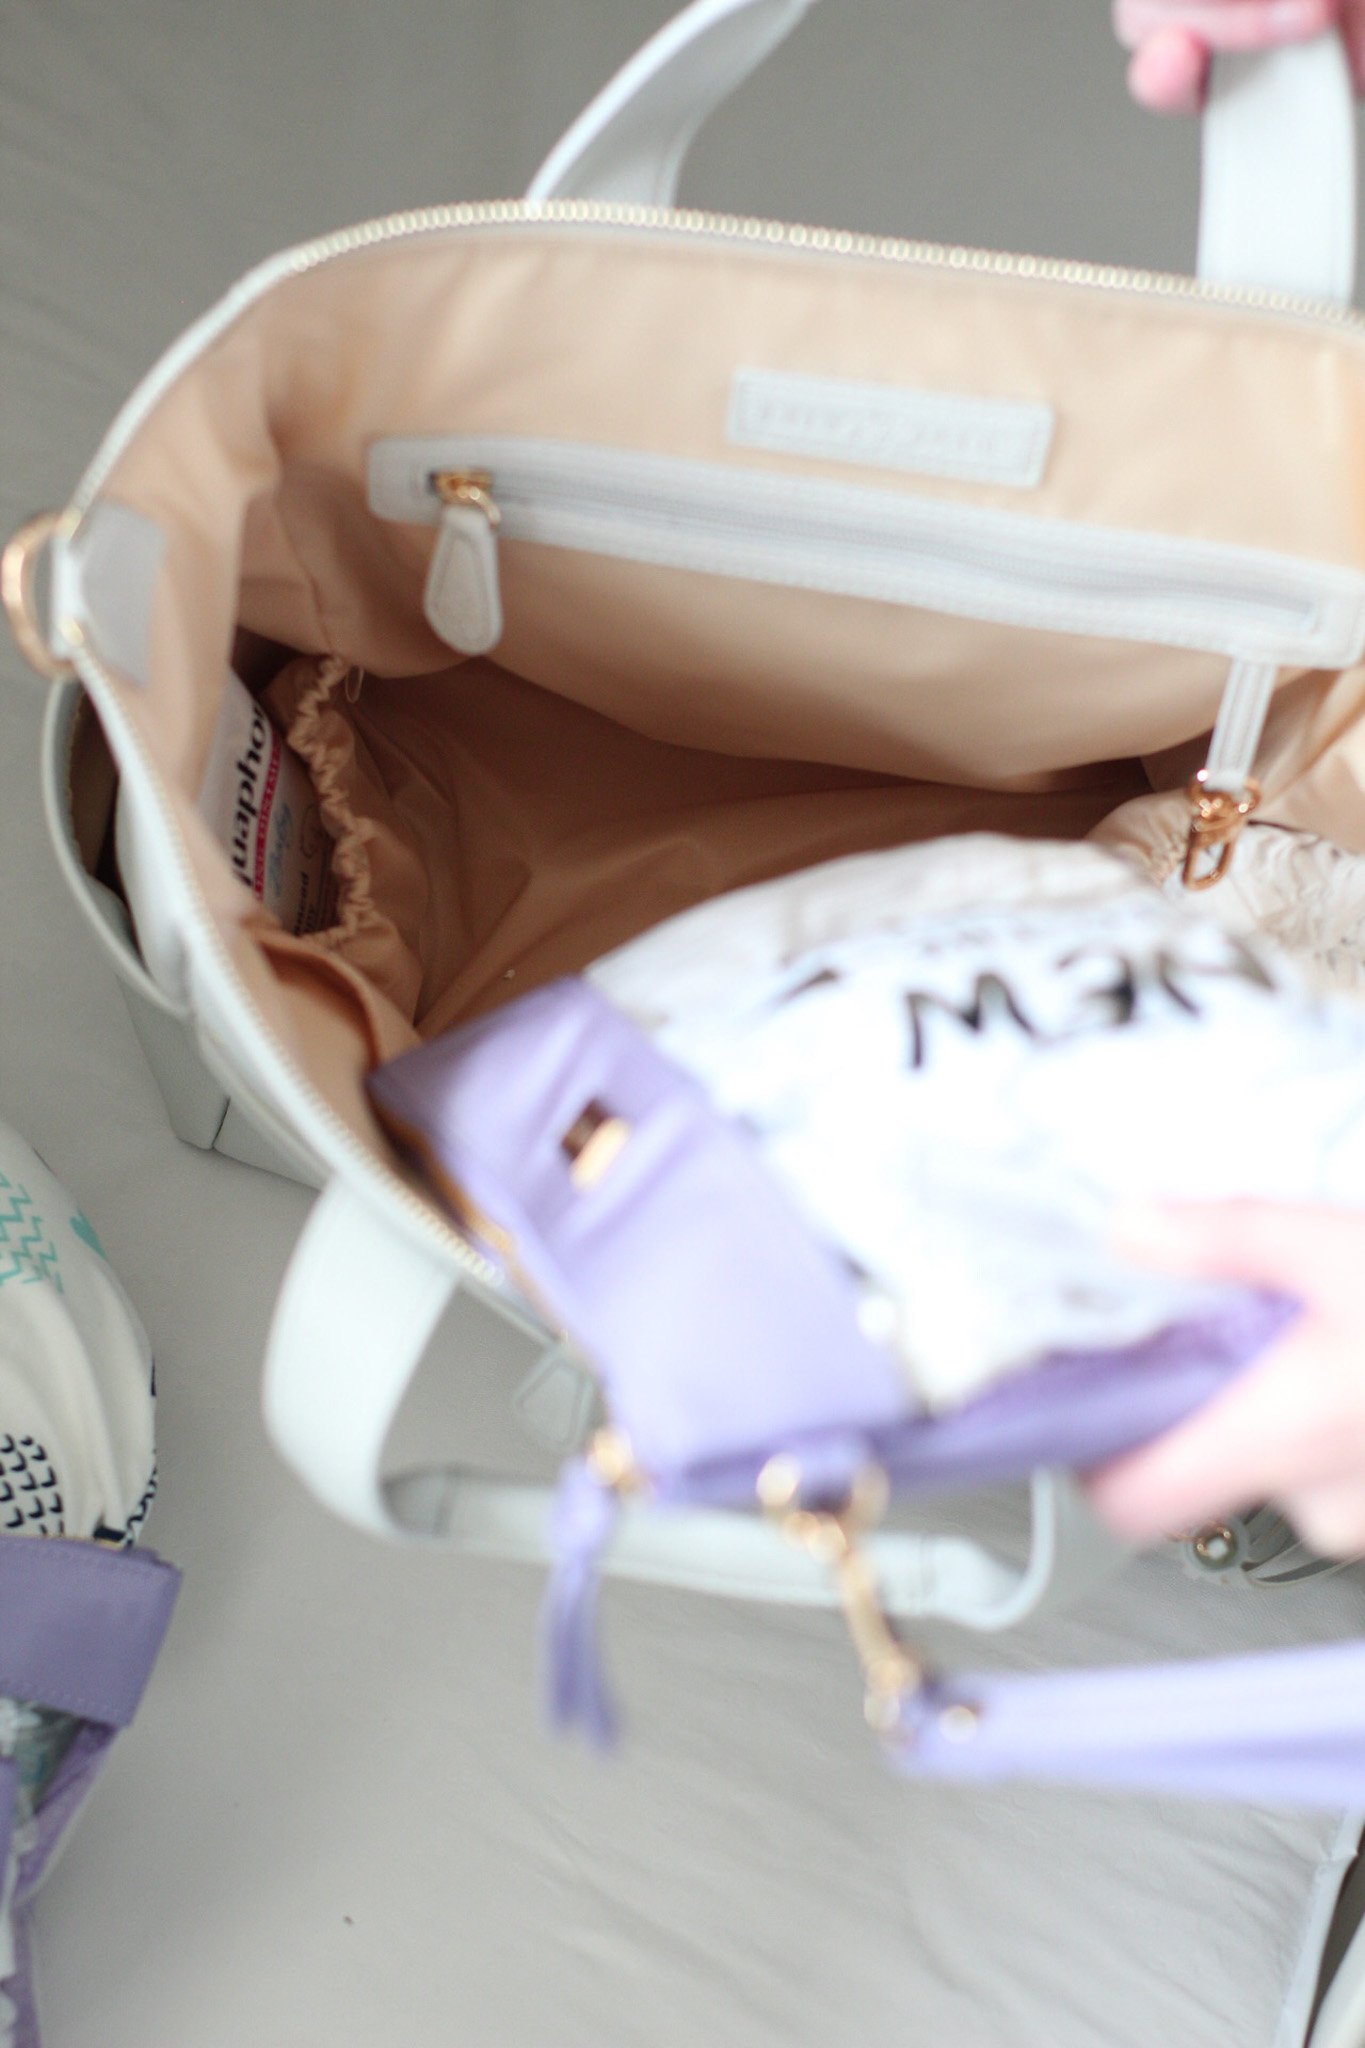 packing hospital bag for scheduled c-section